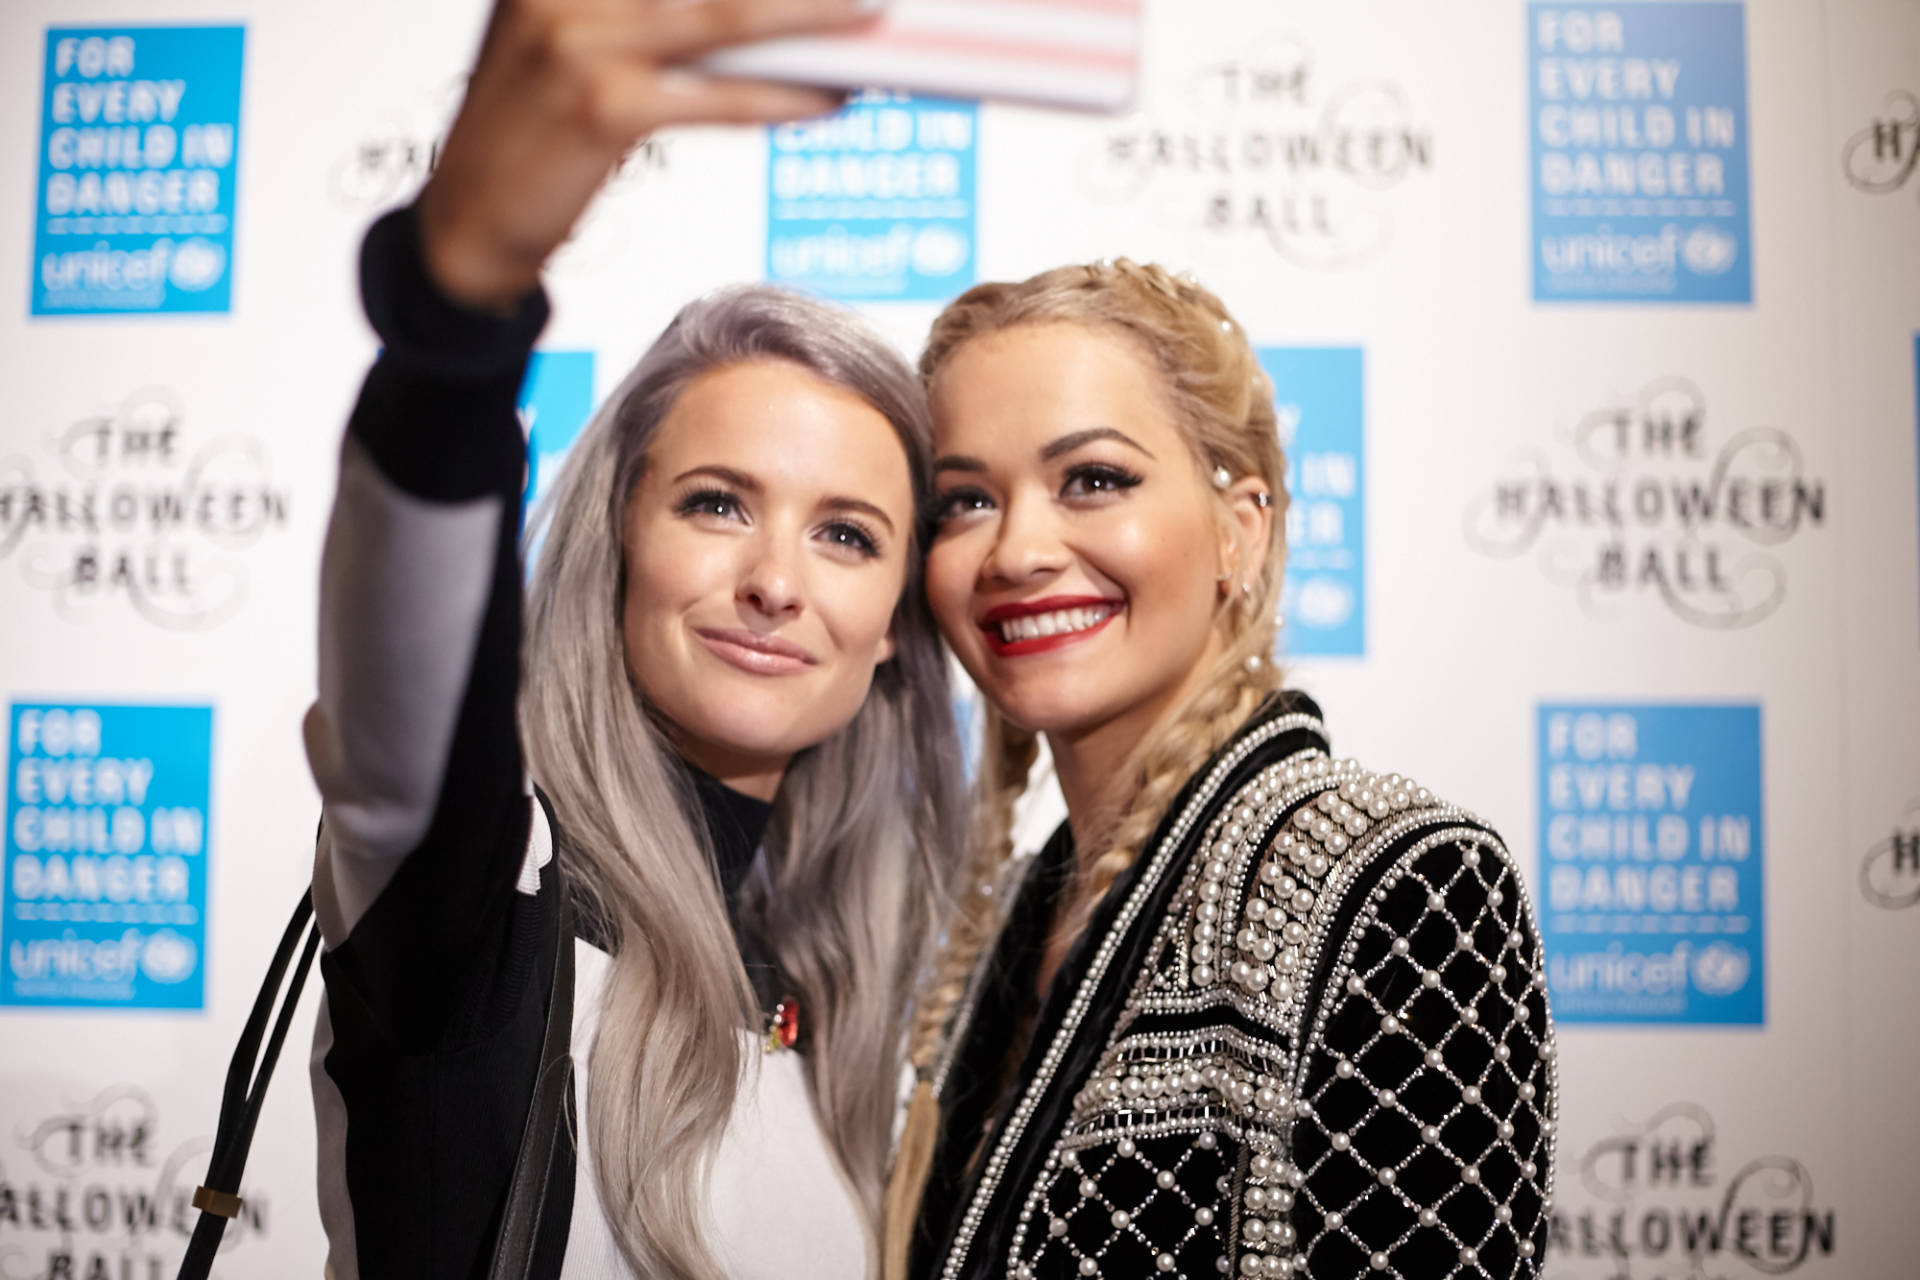 rita ora and inthefrow at unicef halloween ball